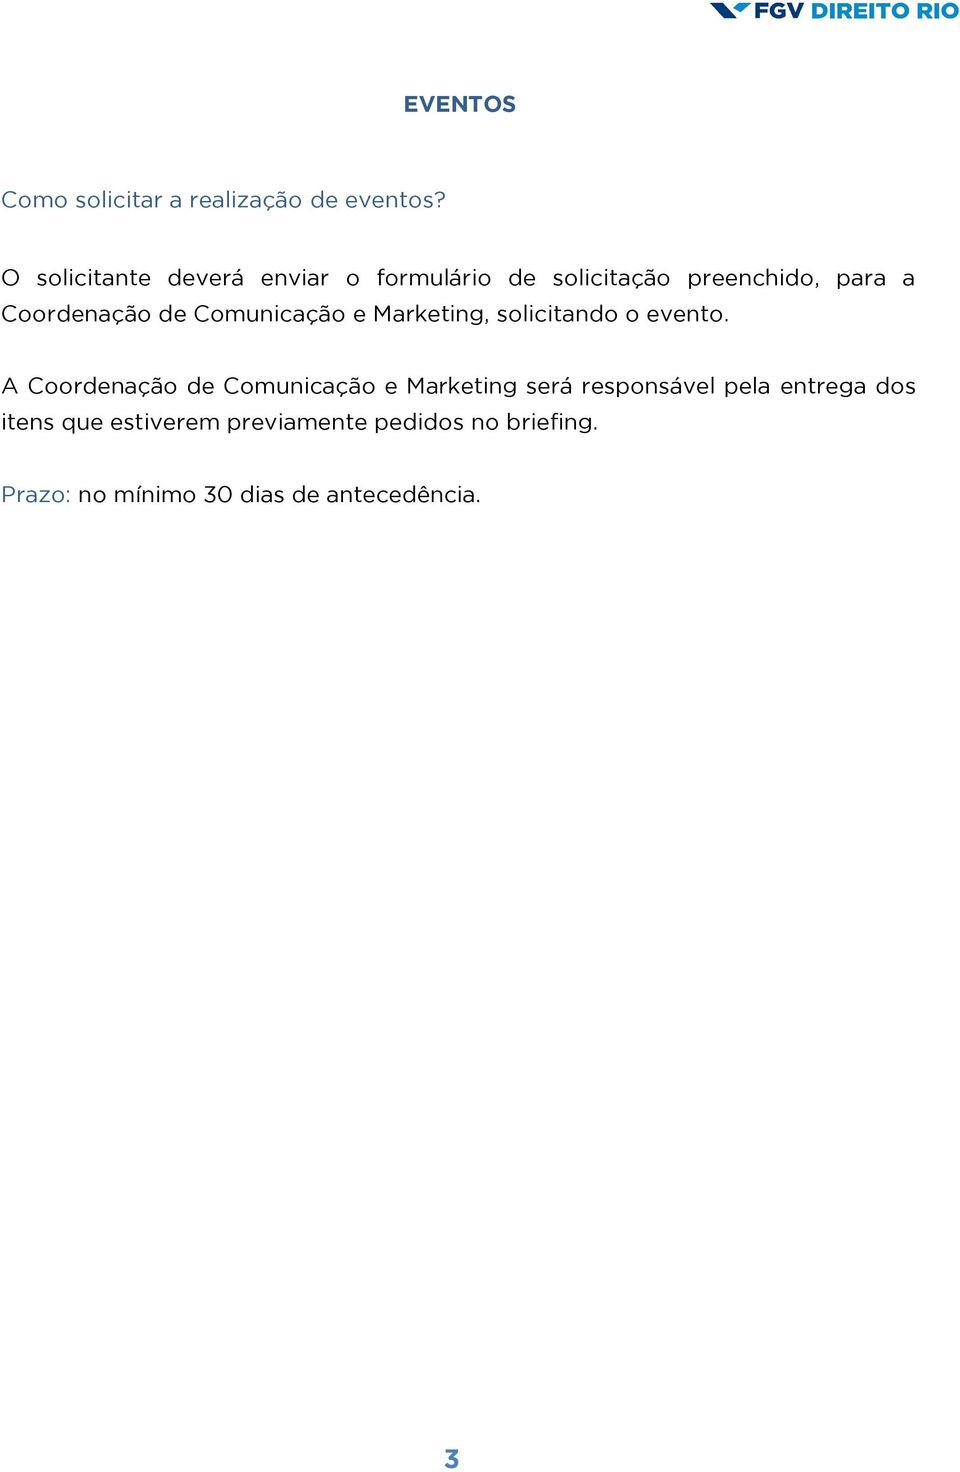 de Comunicação e Marketing, solicitando o evento.